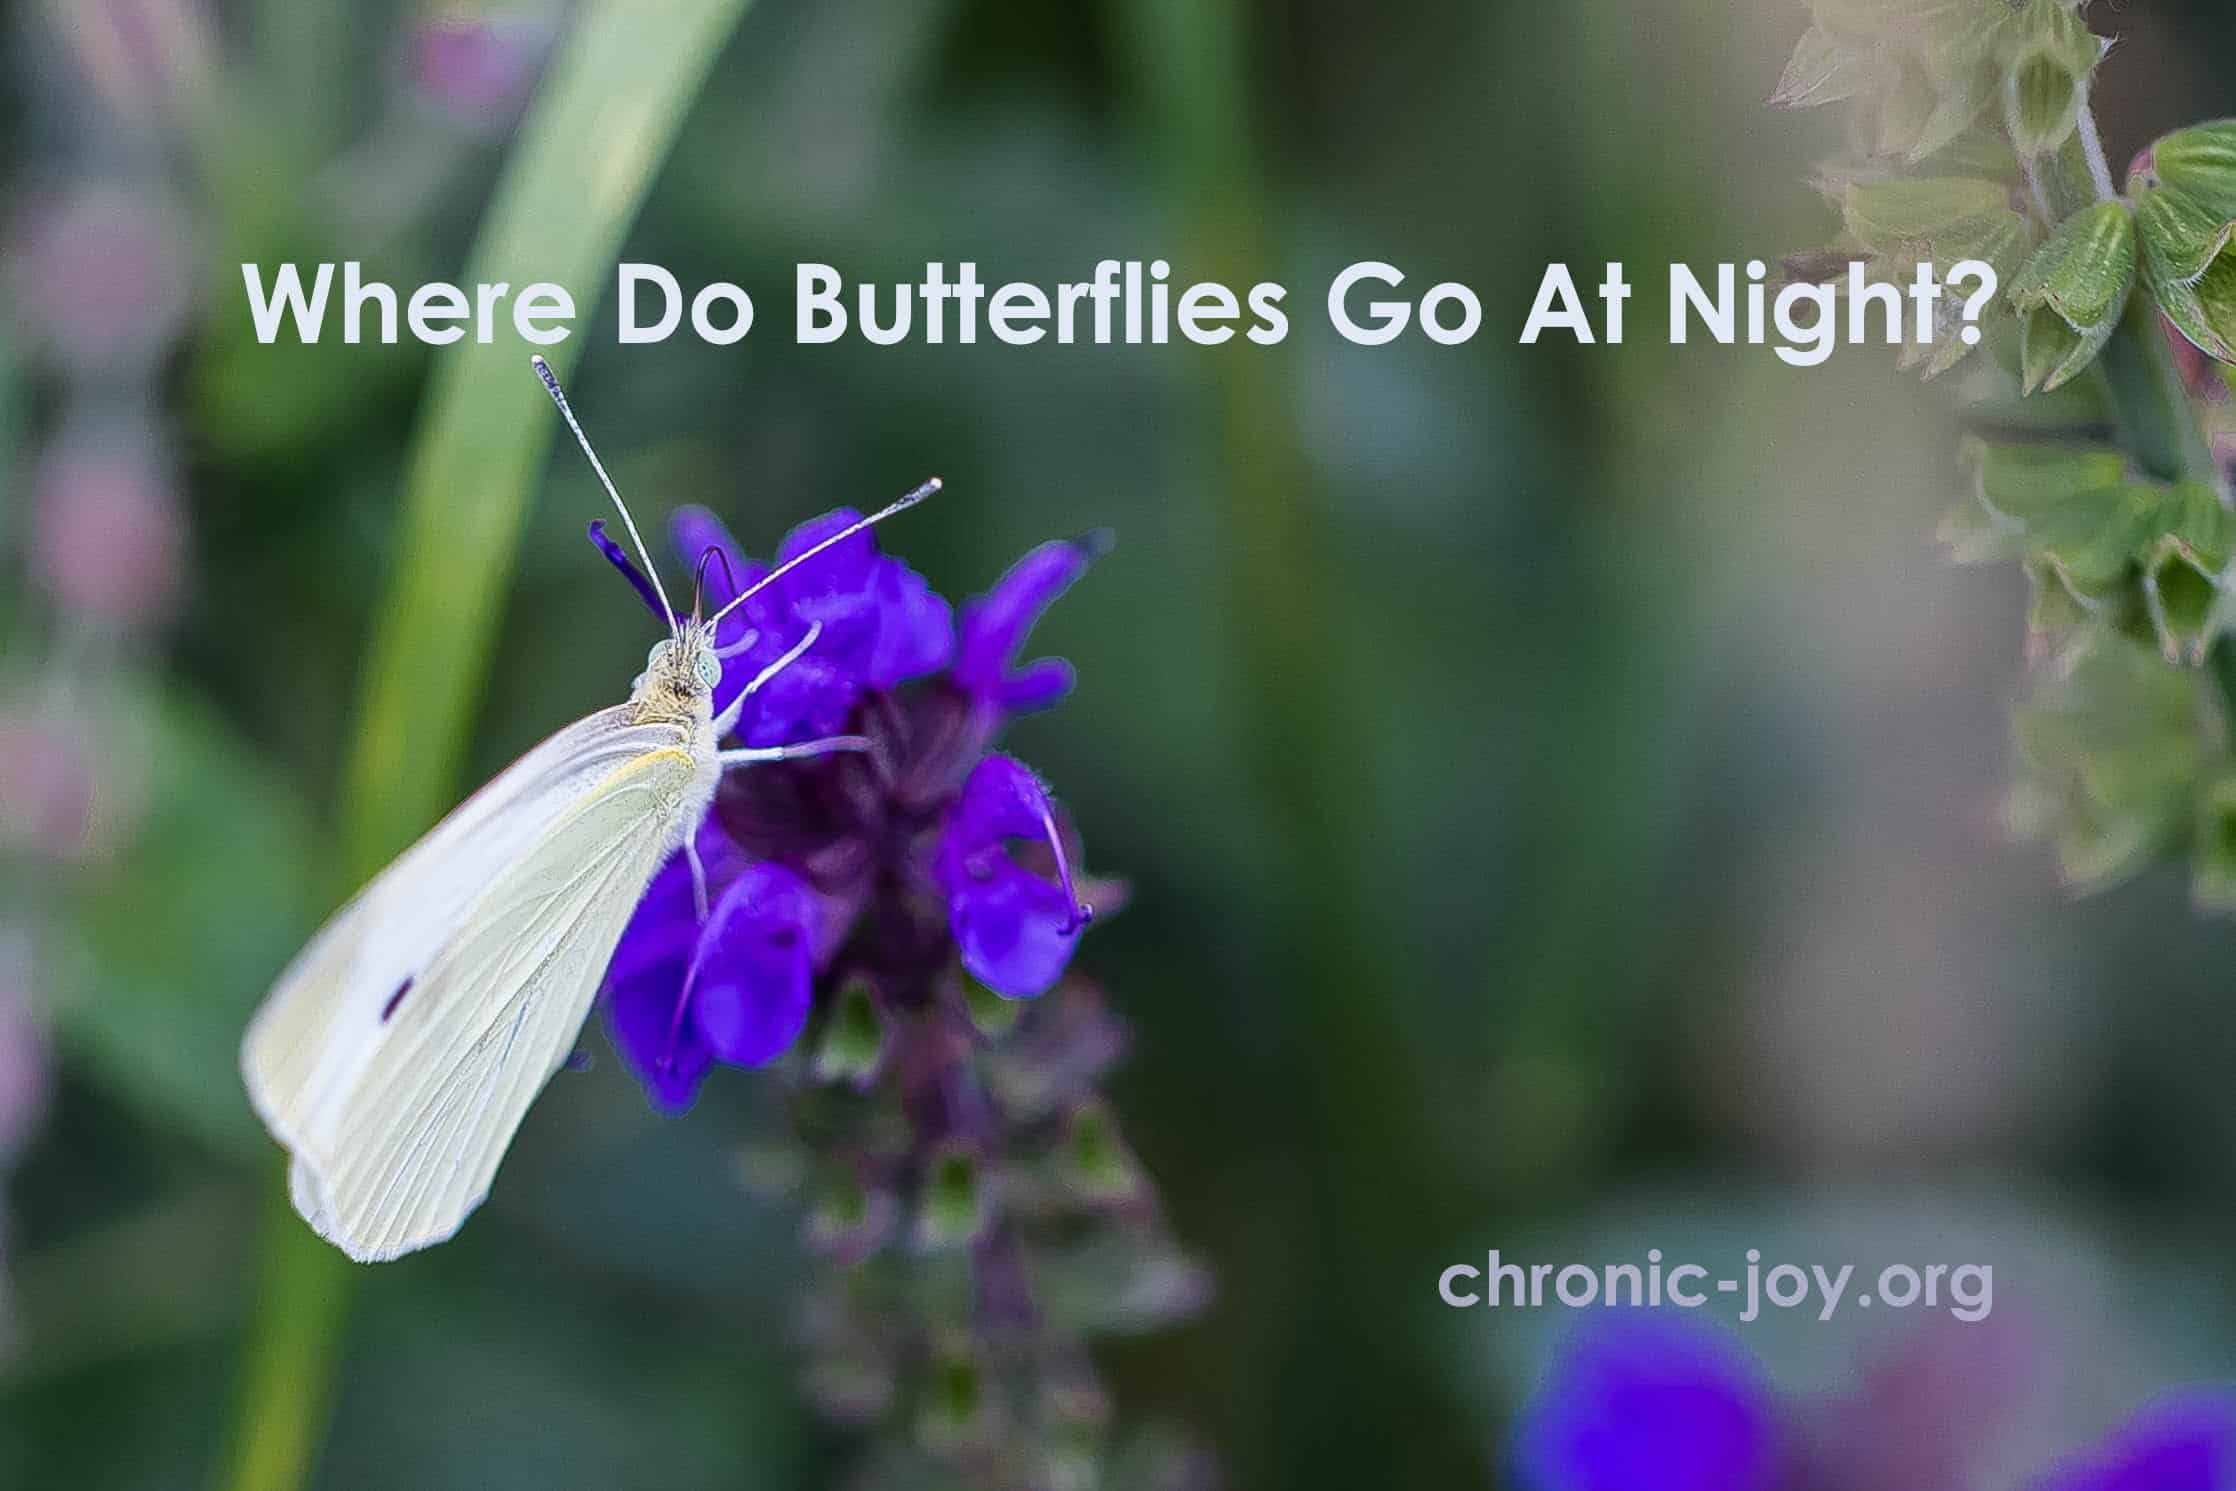 Where Do Butterflies Go At Night?